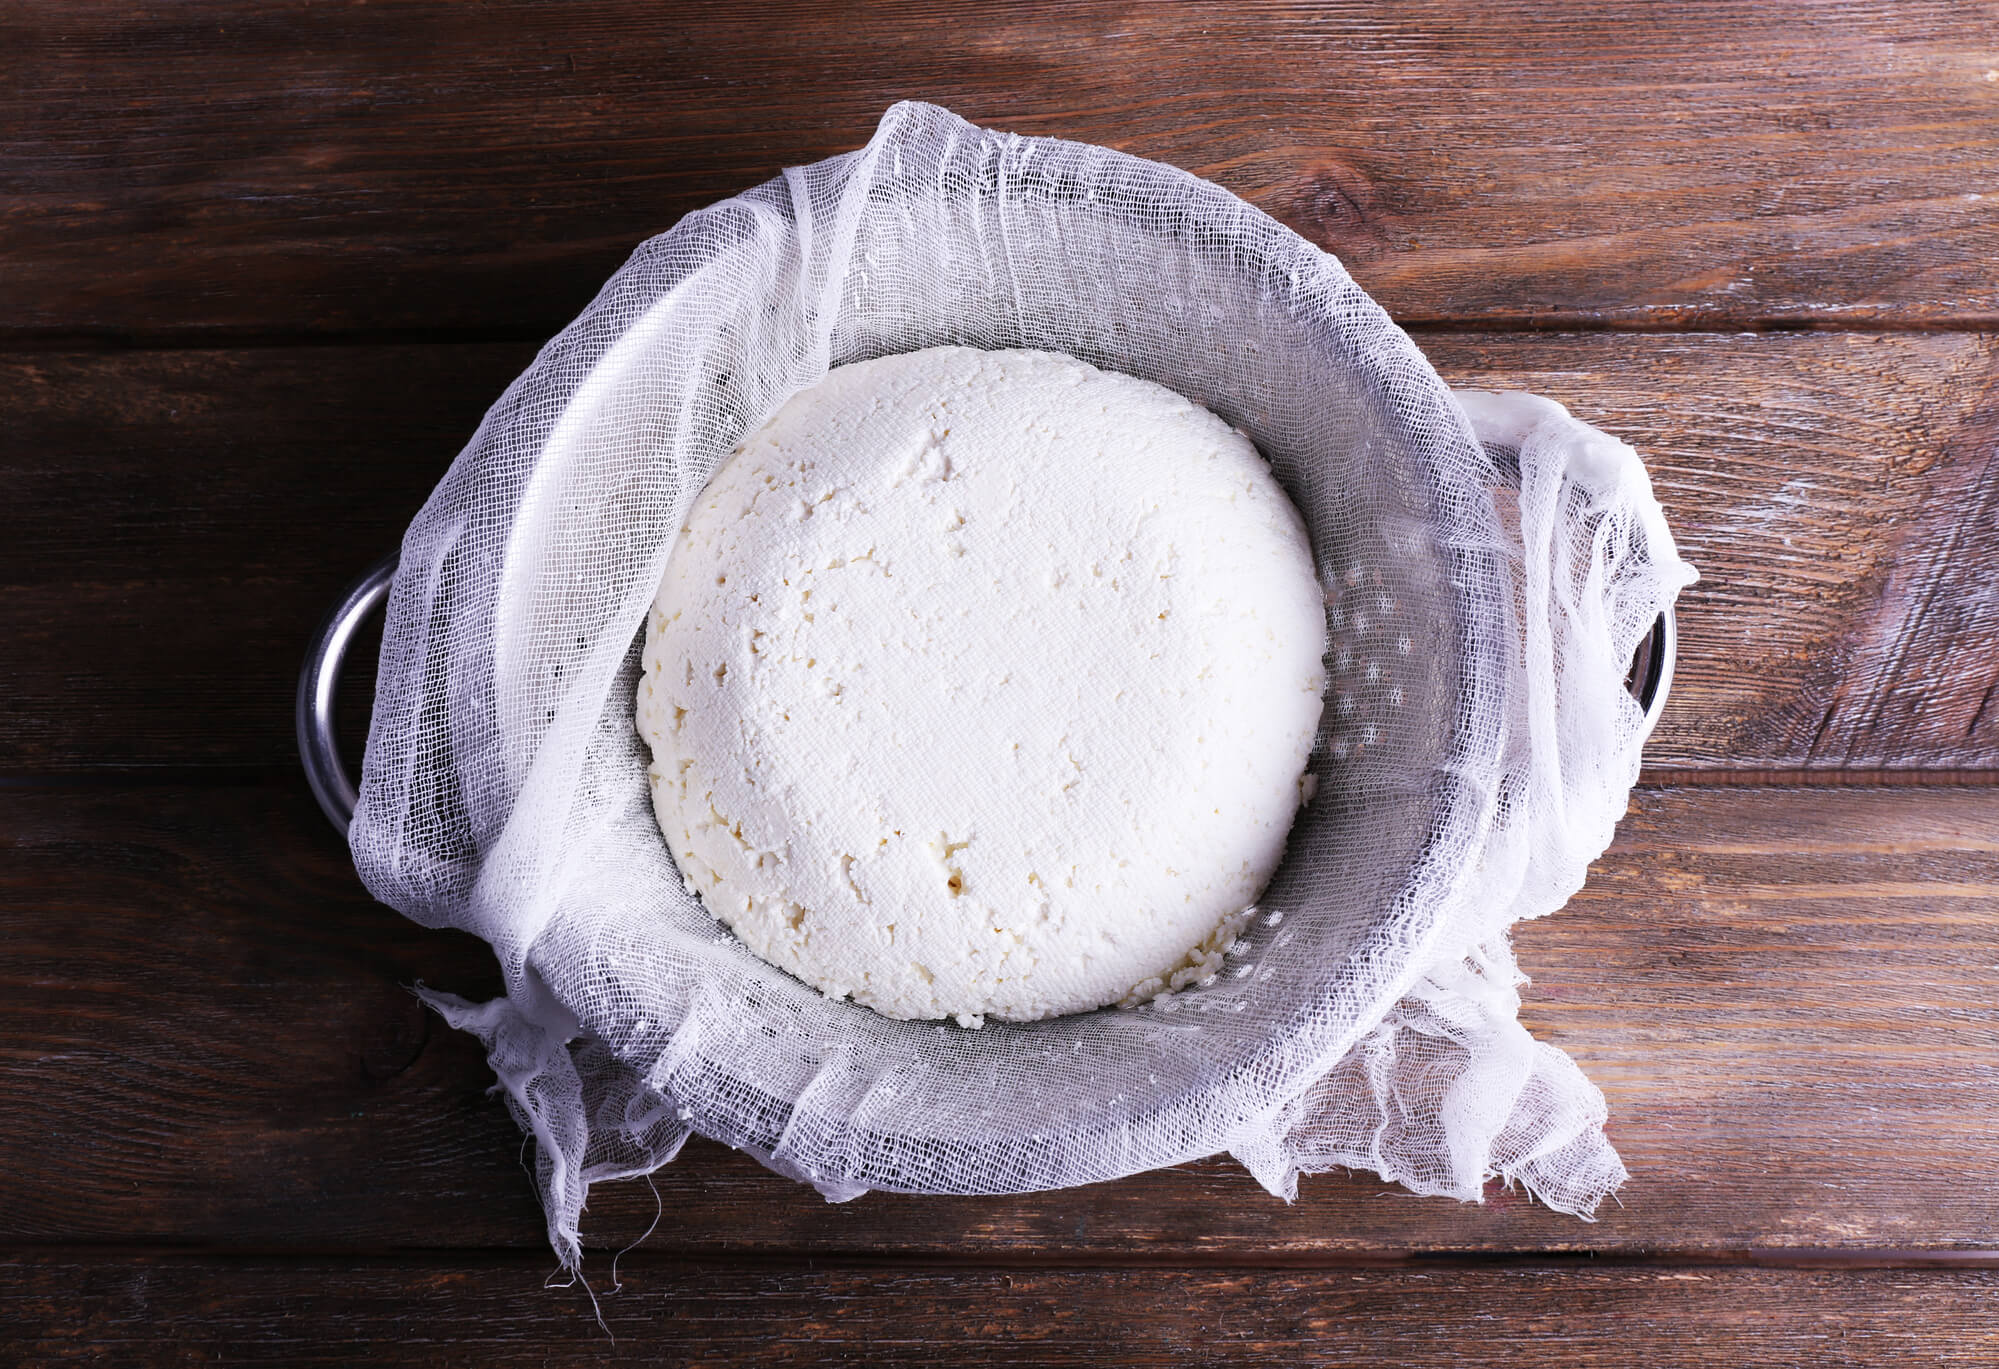 How to Make Your Own a2 Milk Cheese at Home